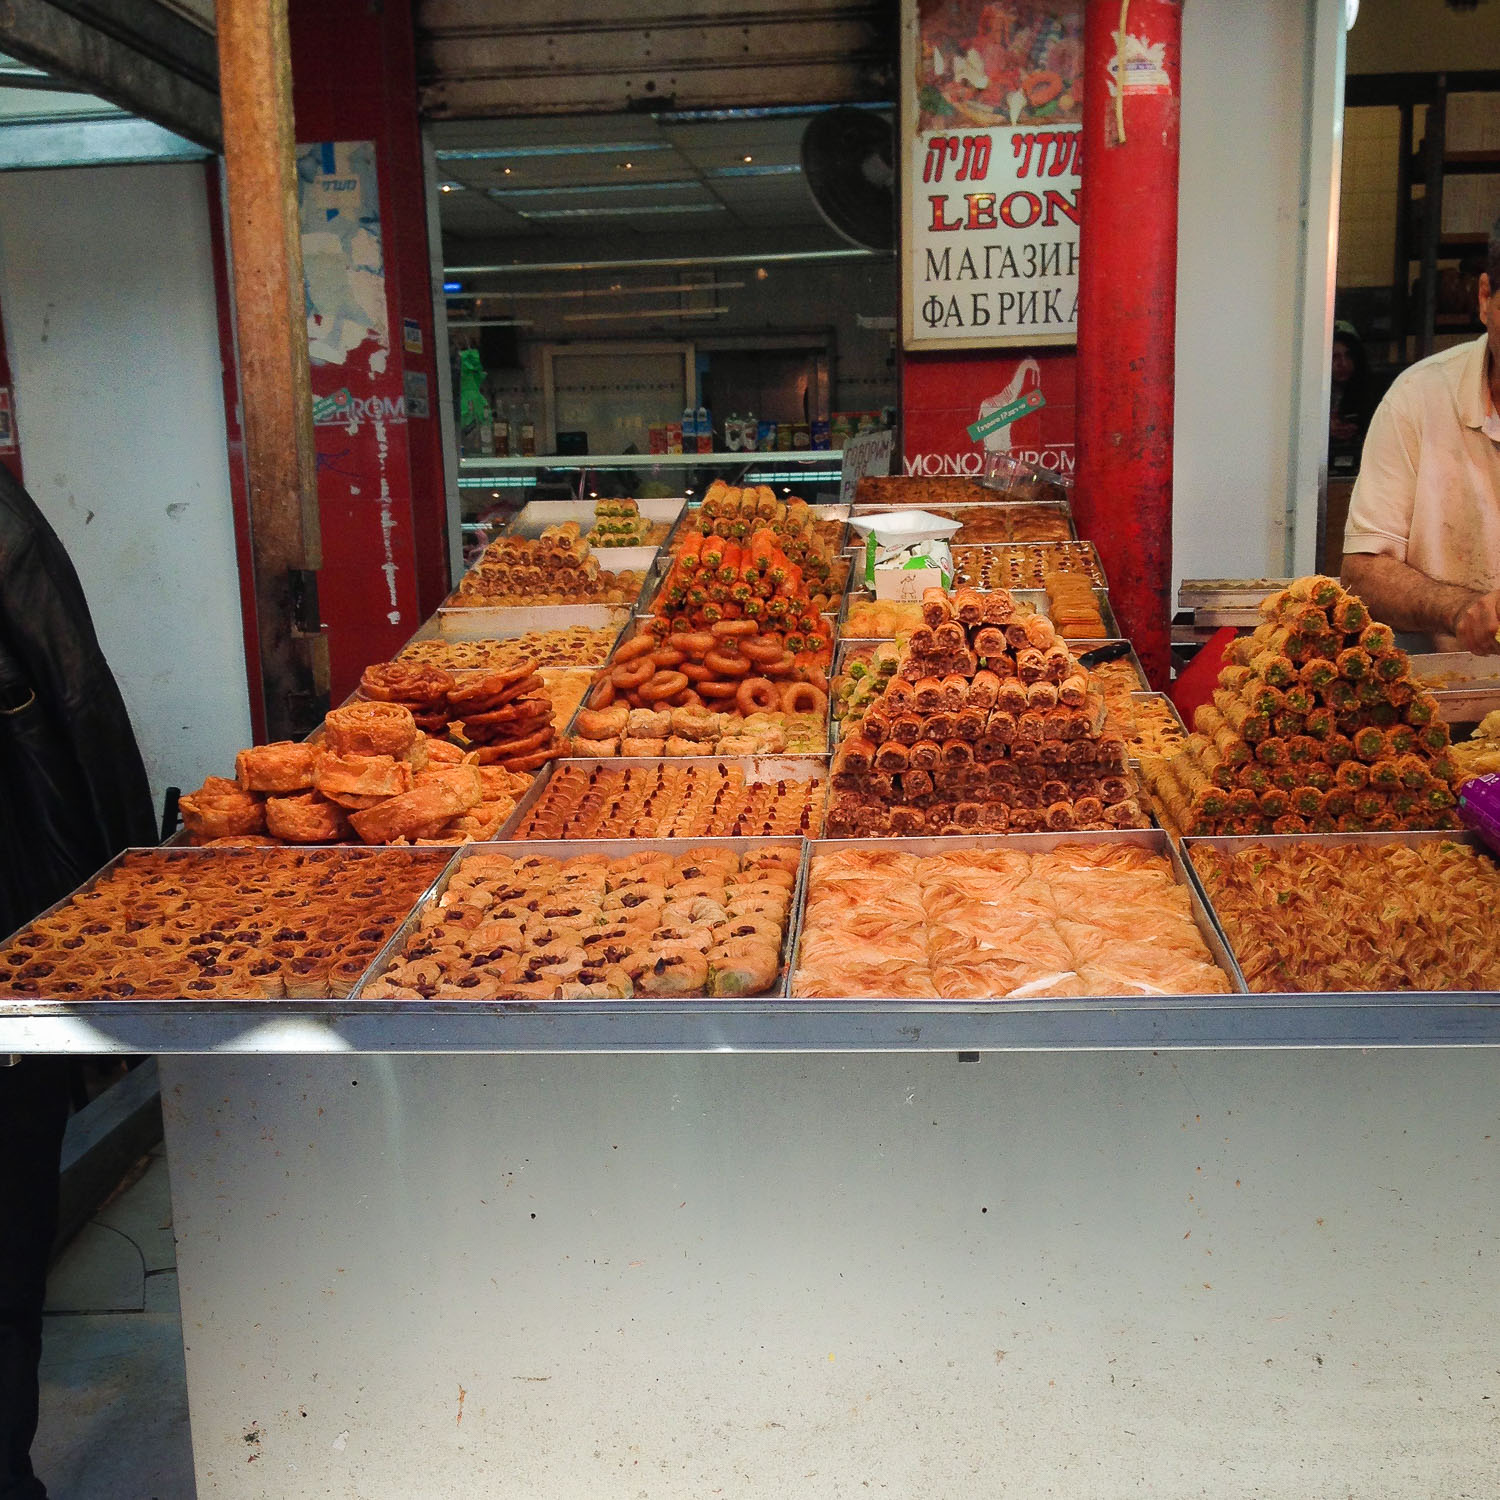 Sweets at the Carmel Market, Tel Aviv (Eat Me. Drink Me.)